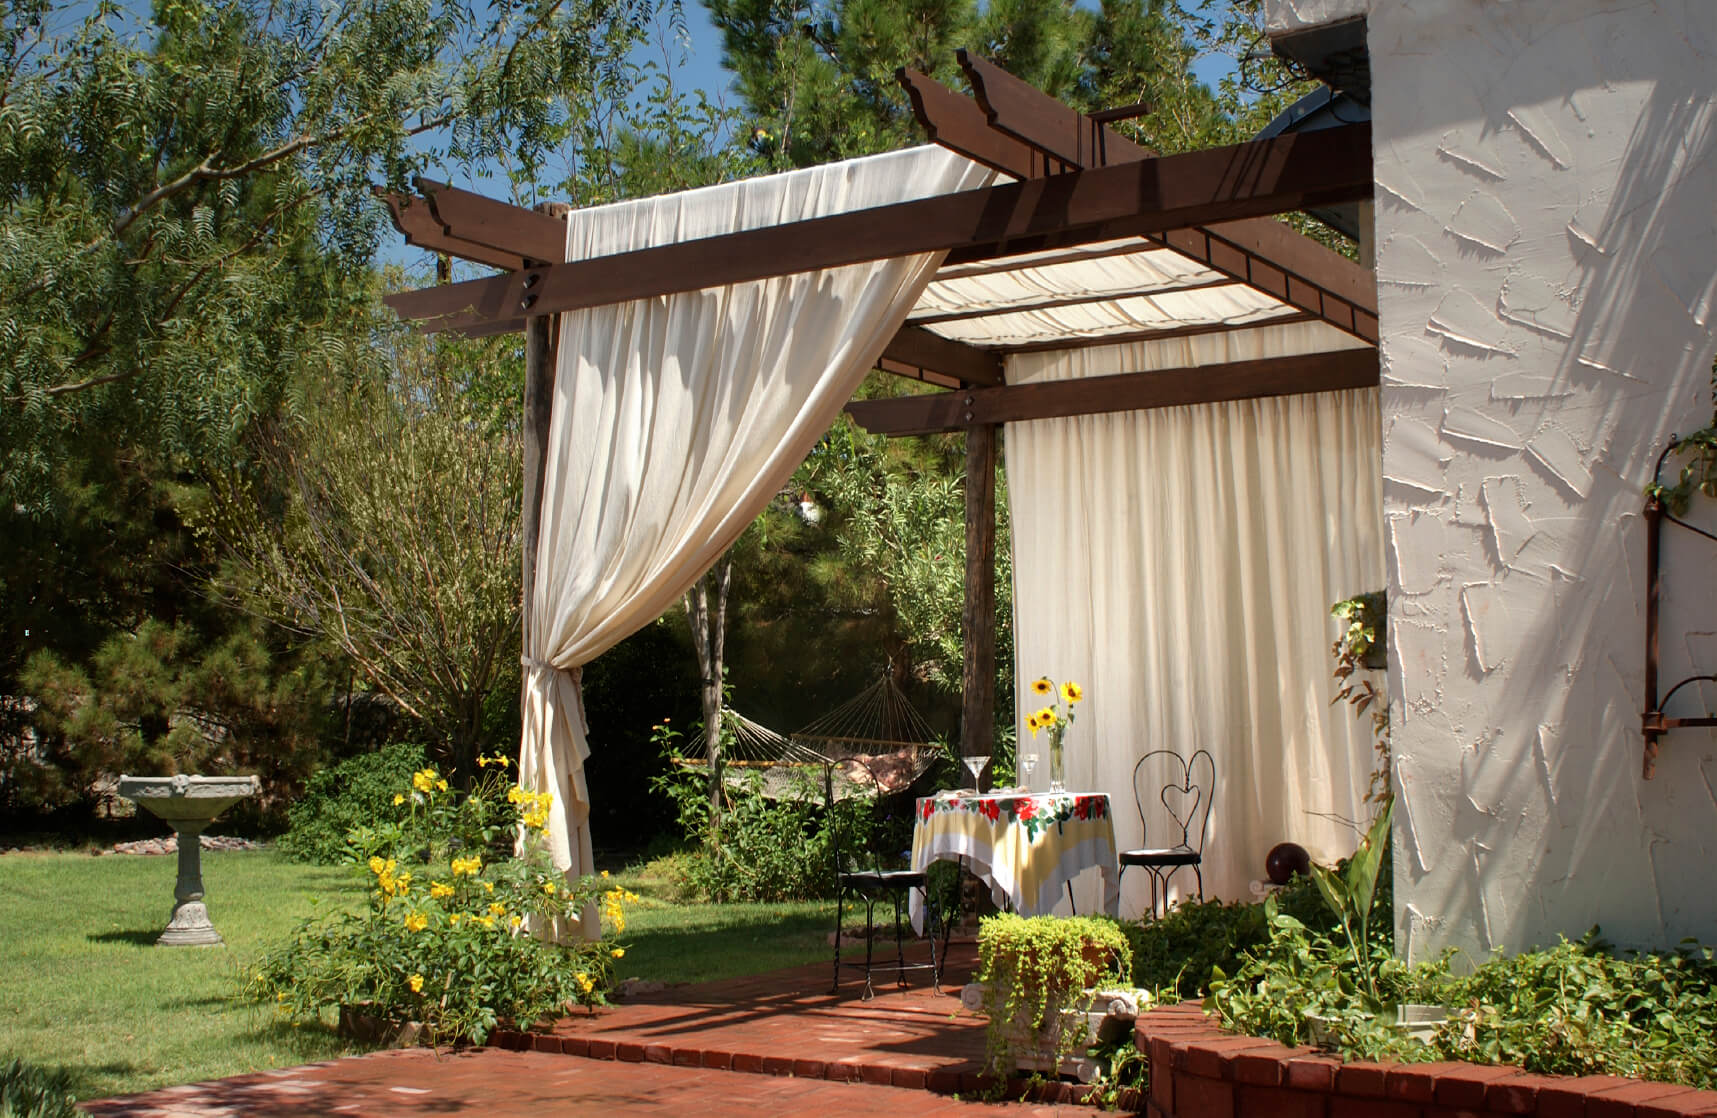 Using curtains is another version of privacy screens that provides a fun and breezy way of accomplishing the job of a privacy screen. While white outdoor curtains have a traditional look, curtains can be made from a countless variety of materials, patterns, and colors.